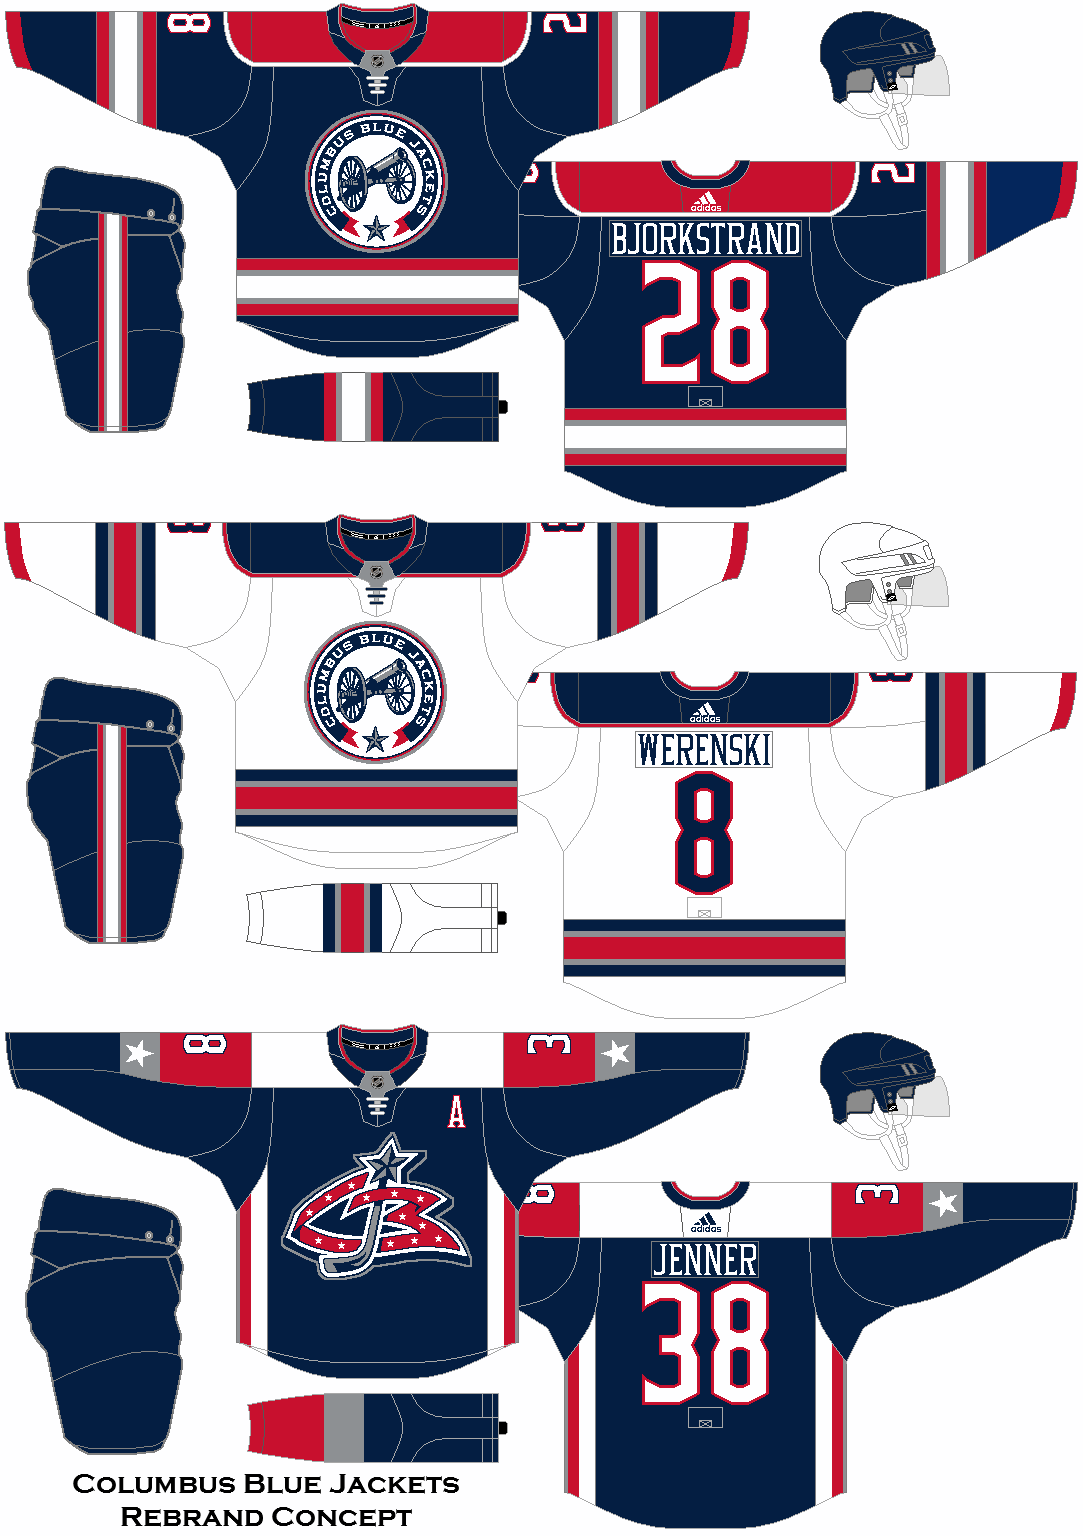 Columbus Blue Jackets Rebrand Uniform Set Concept Columbus Blue Jackets Jersey Design Blue Jacket